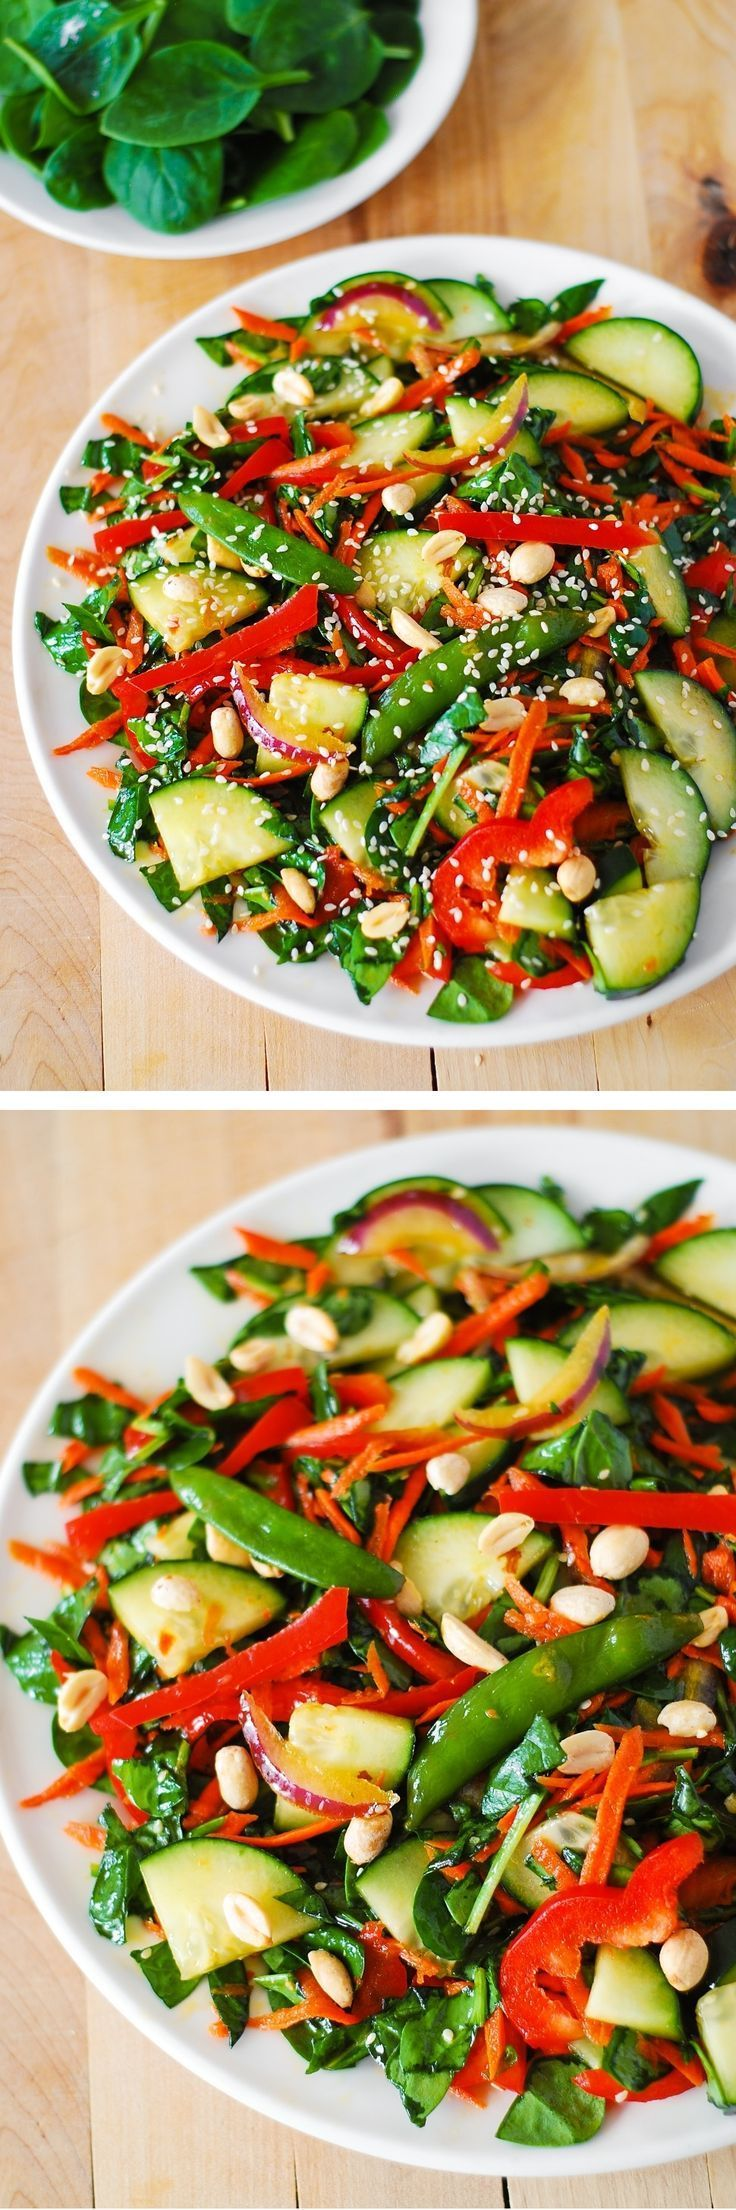 Healthy, vegetarian, and gluten free recipe: Crunchy Asian salad with peanut dressing. Vegetables tossed in a delicious, homemade peanut dressing, and topped with toasted peanuts and sesame seeds. The (Fitness Recipes Meat)